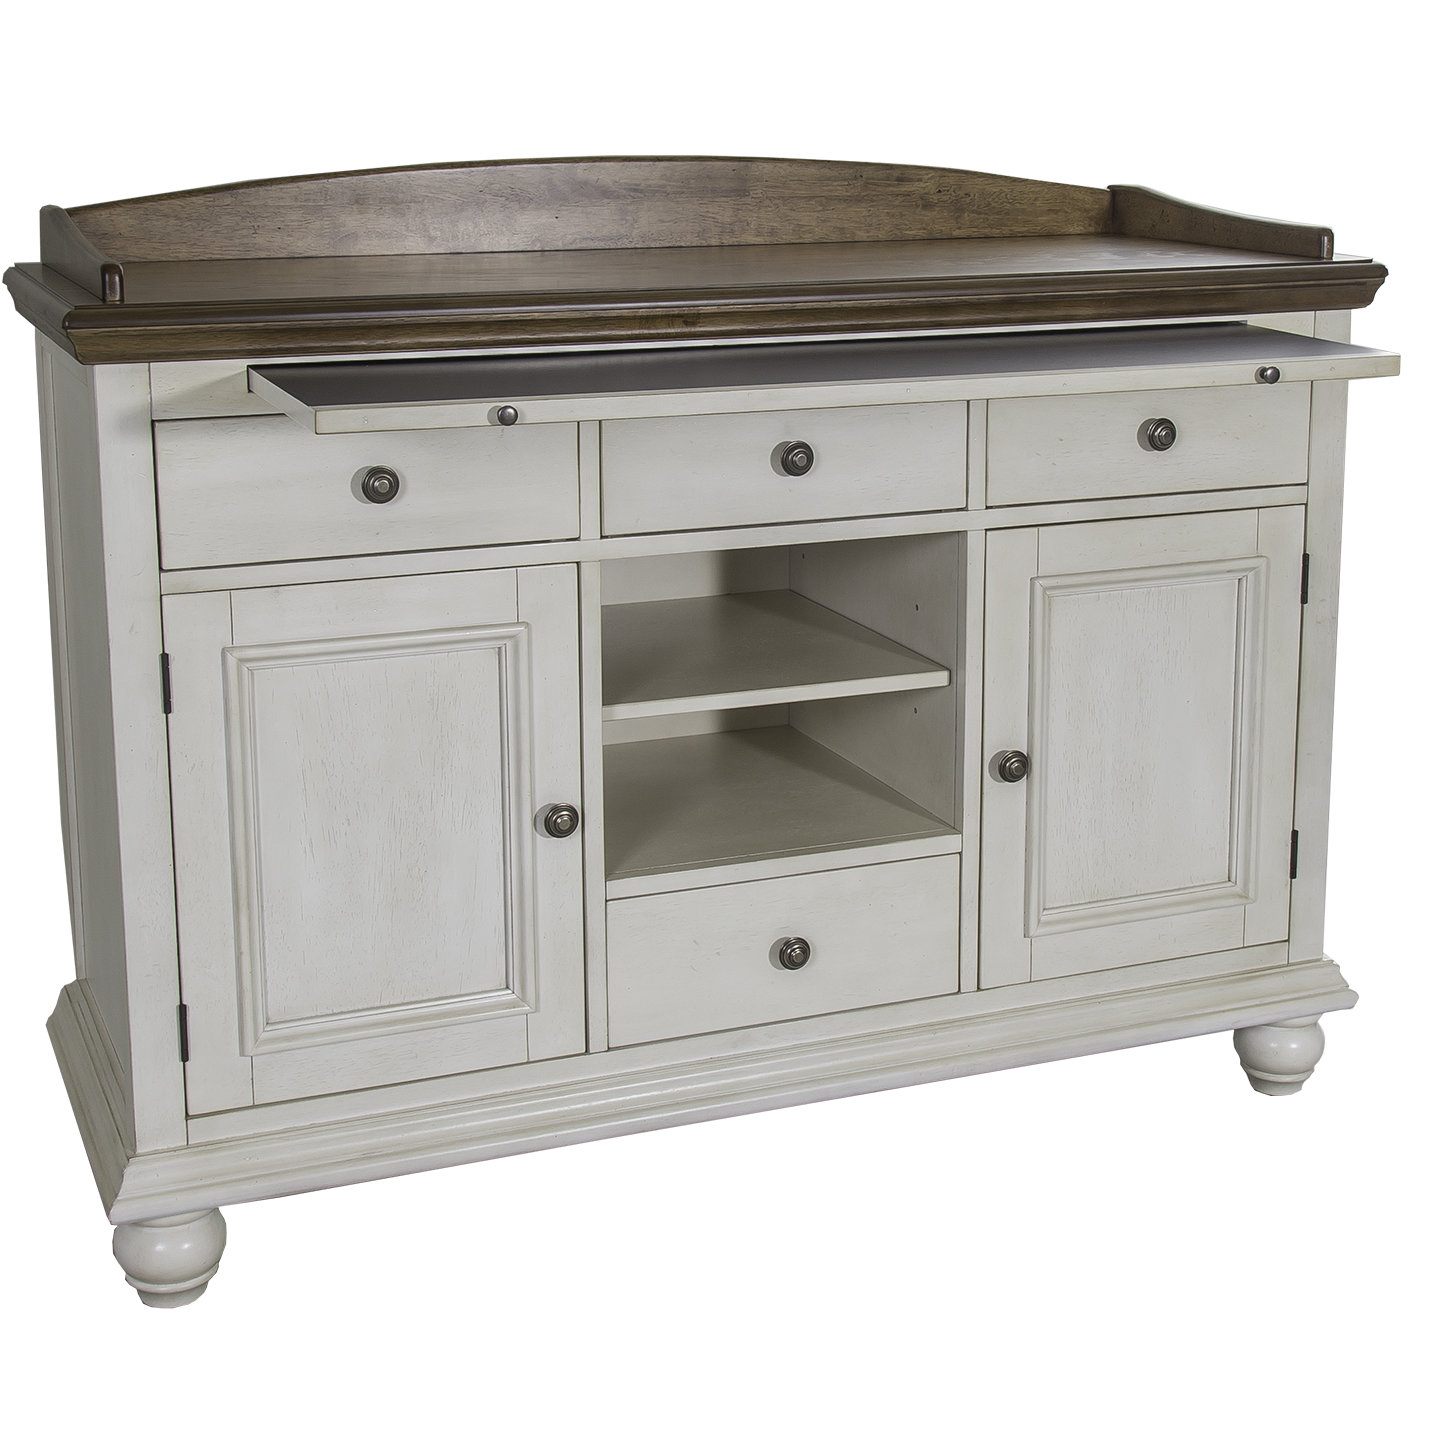 Ruskin Sideboard With Ruskin Sideboards (Gallery 4 of 30)